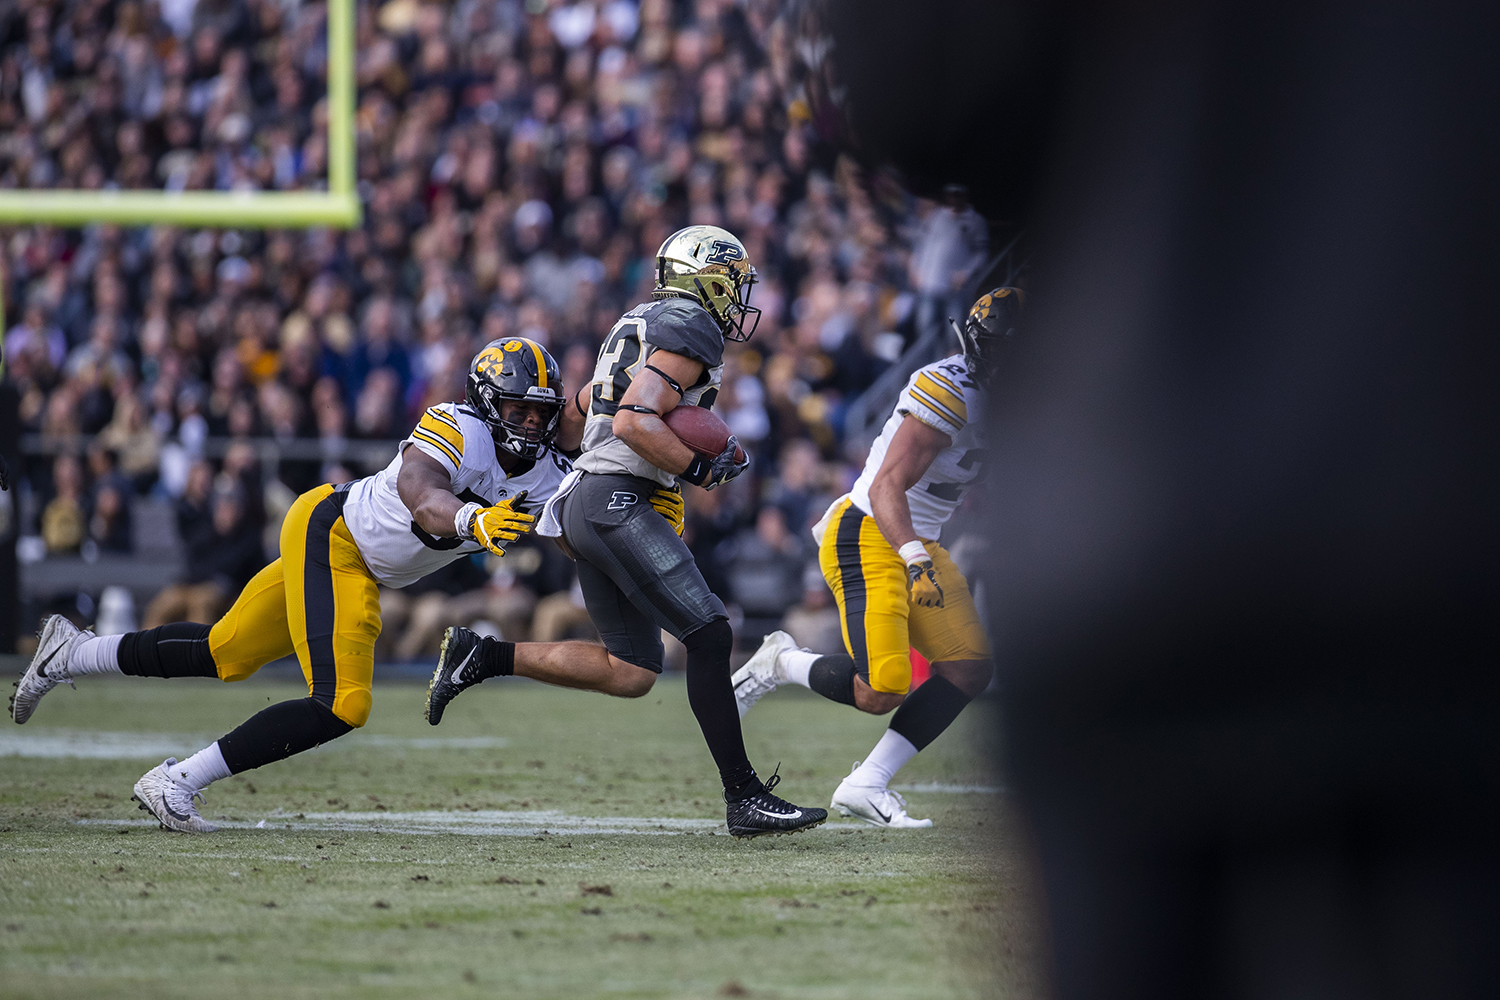 Iowa+defensive+back+Chauncey+Golston+tackles+Purdue+during+the+Iowa%2FPurdue+game+at+Ross-Ade+Stadium+in+West+Lafayette%2C+Ind.+The+Boilermakers+defeated+the+Hawkeyes%2C+38-36%2C+with+a+last+second+field+goal.+